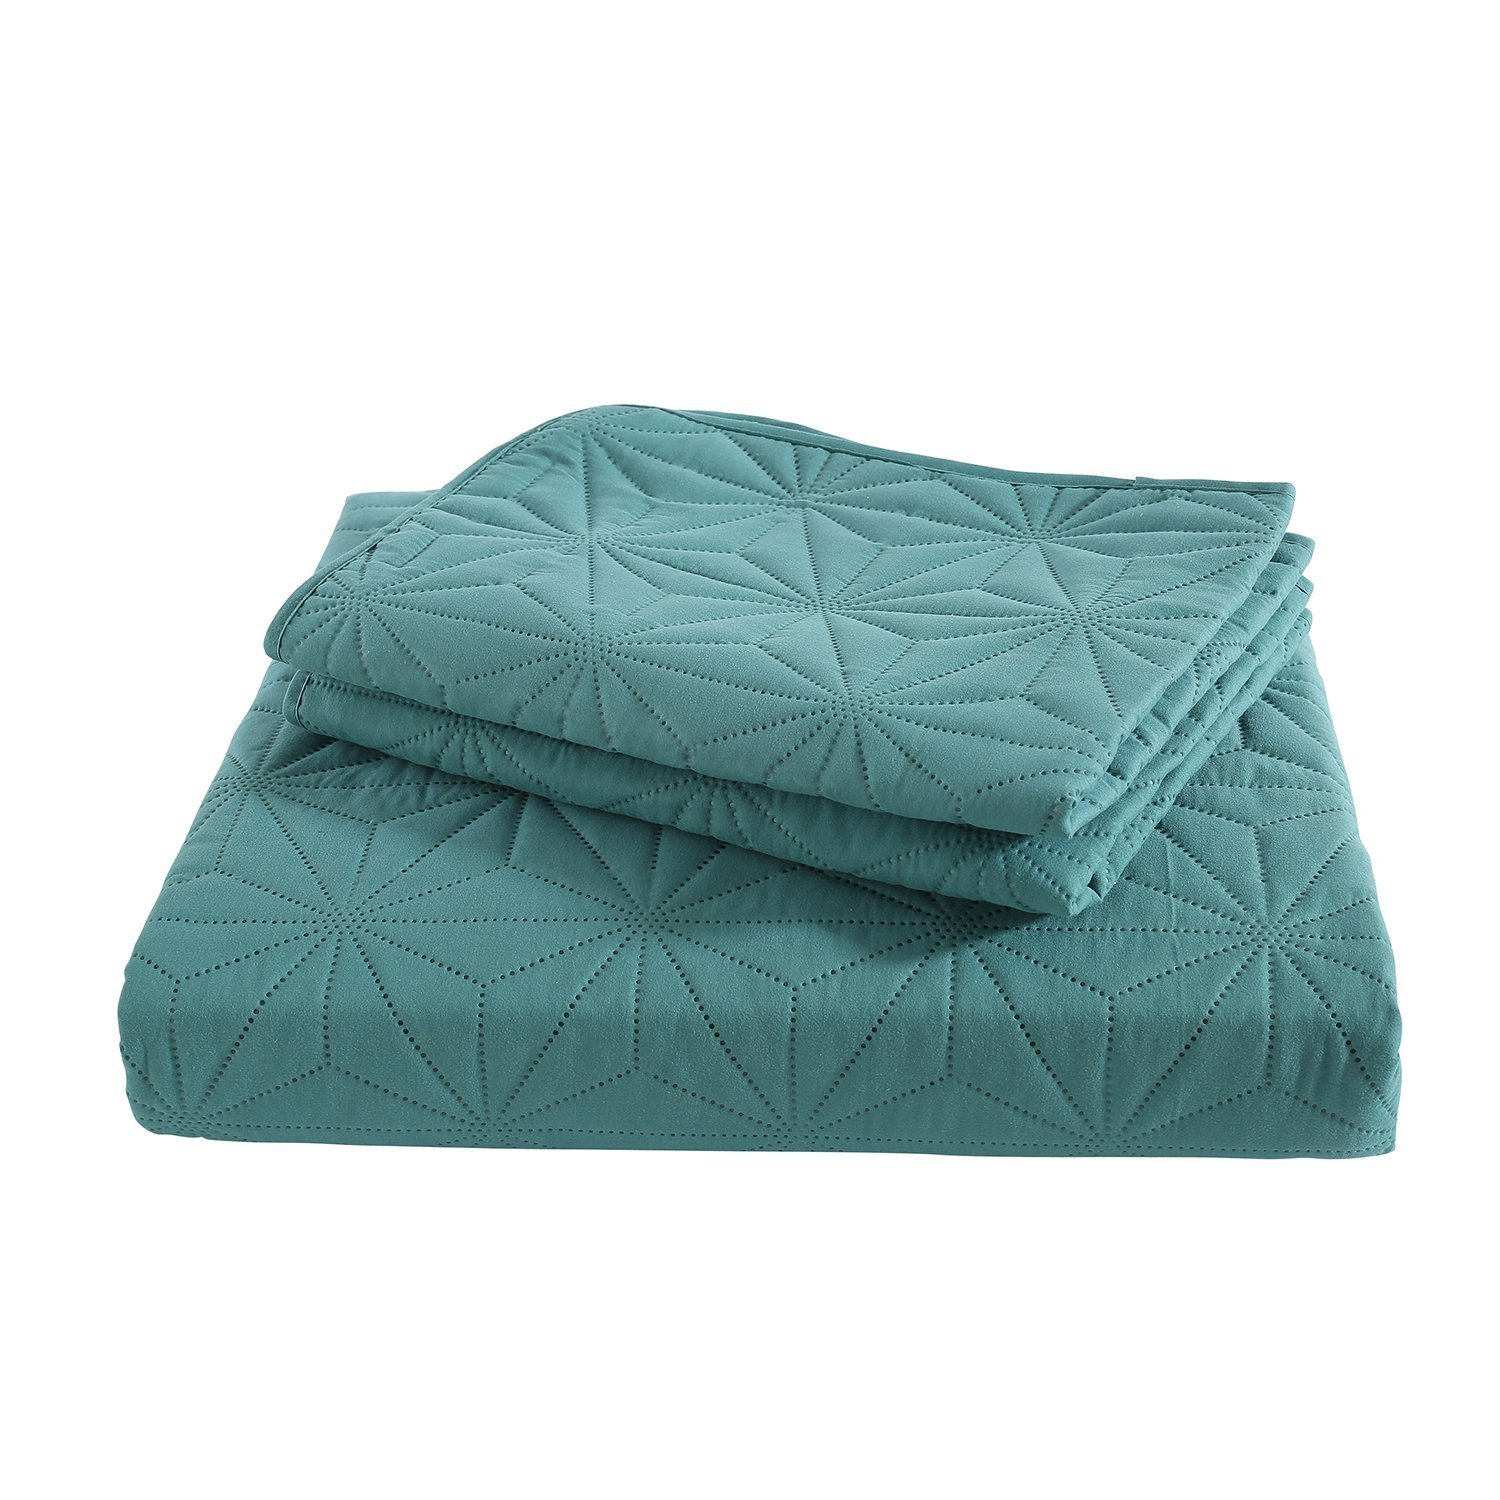 3 Pieces King Size Quilt Solid Lightweight Hypoallergenic Microfiber HollyHOME Snowflake Quilt Set Collection Turquoise Blue